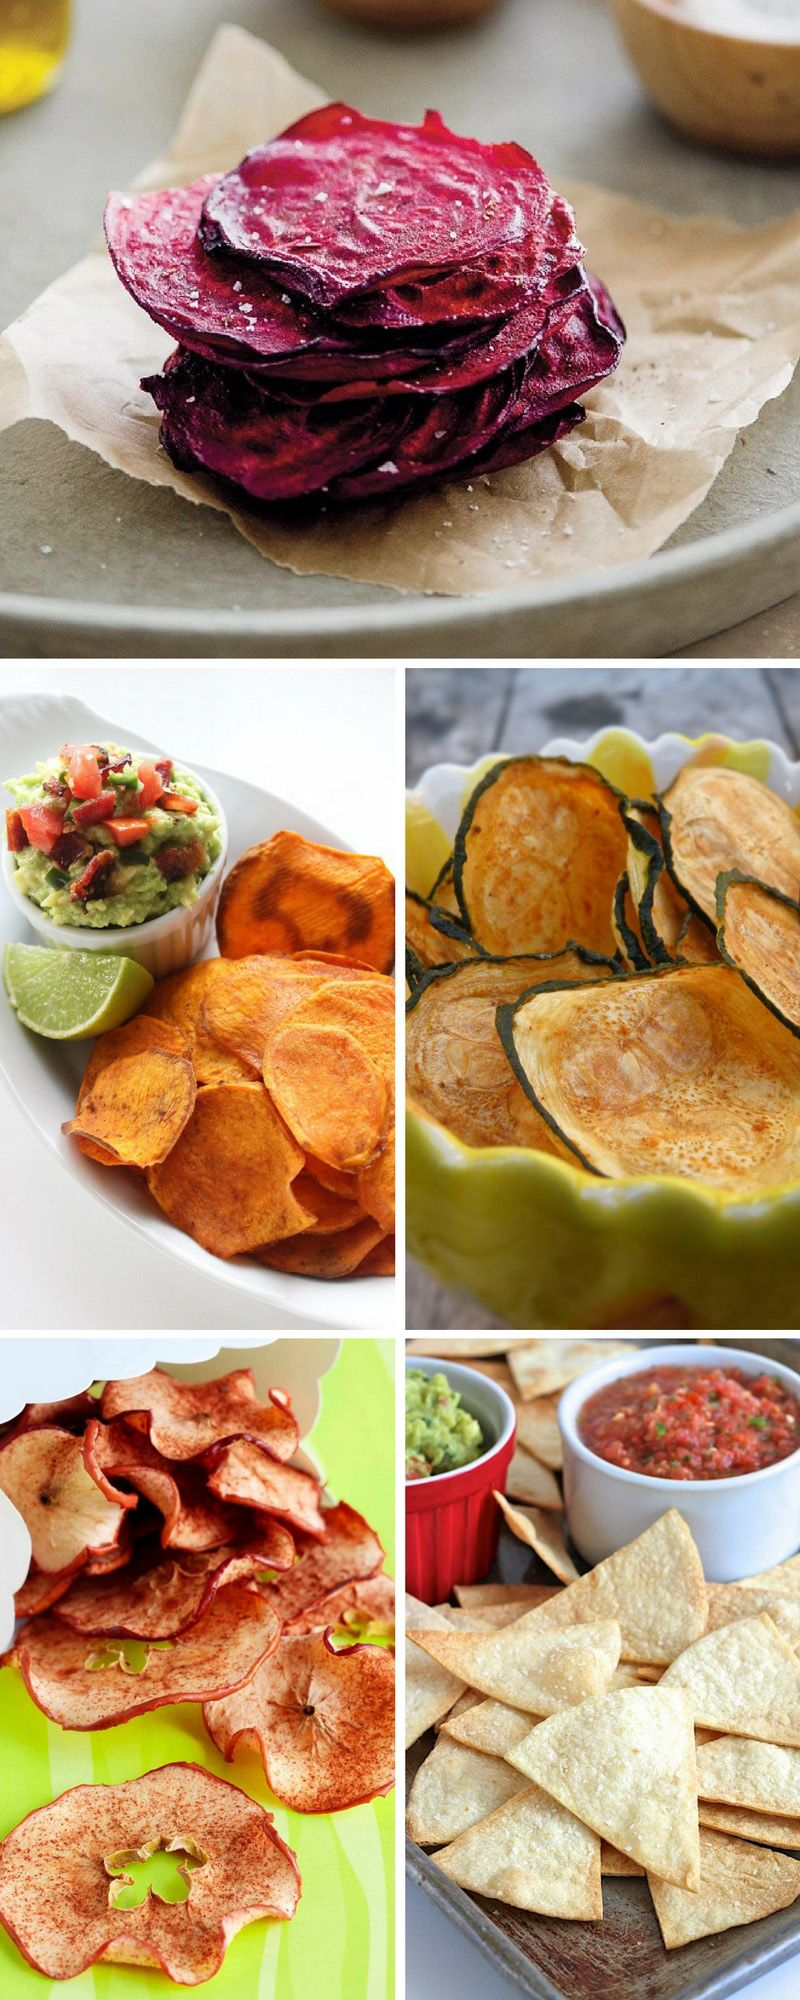 You can use vegetables and fruits and prepare them as chips. They will be just as much as crispy and delicious as the potato chips, with the…